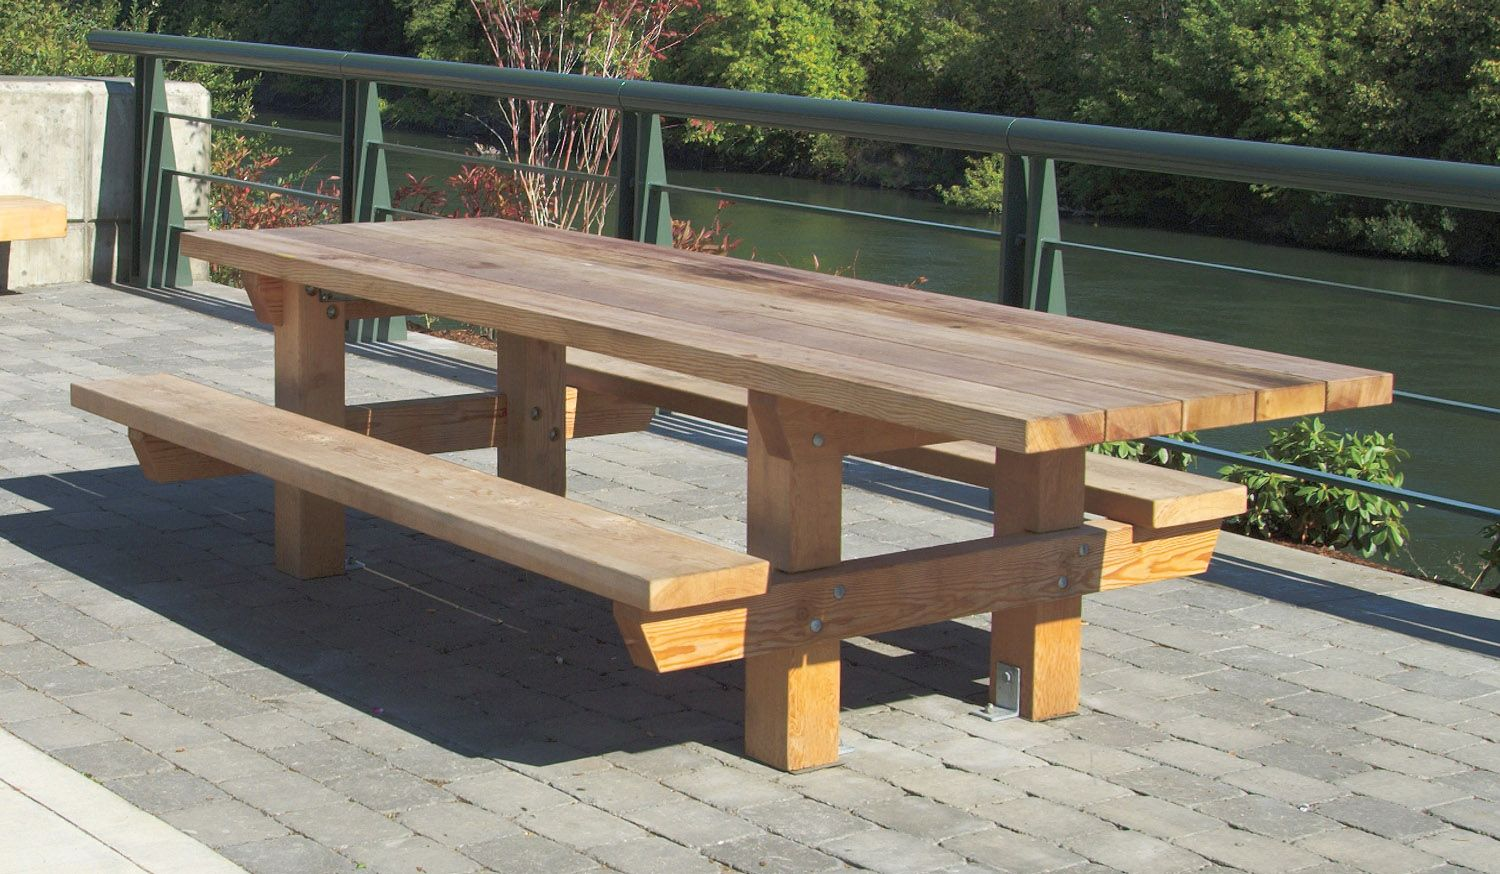 Timberform Site Furnishings Build A Picnic Table Picnic Table Picnic Table Plans